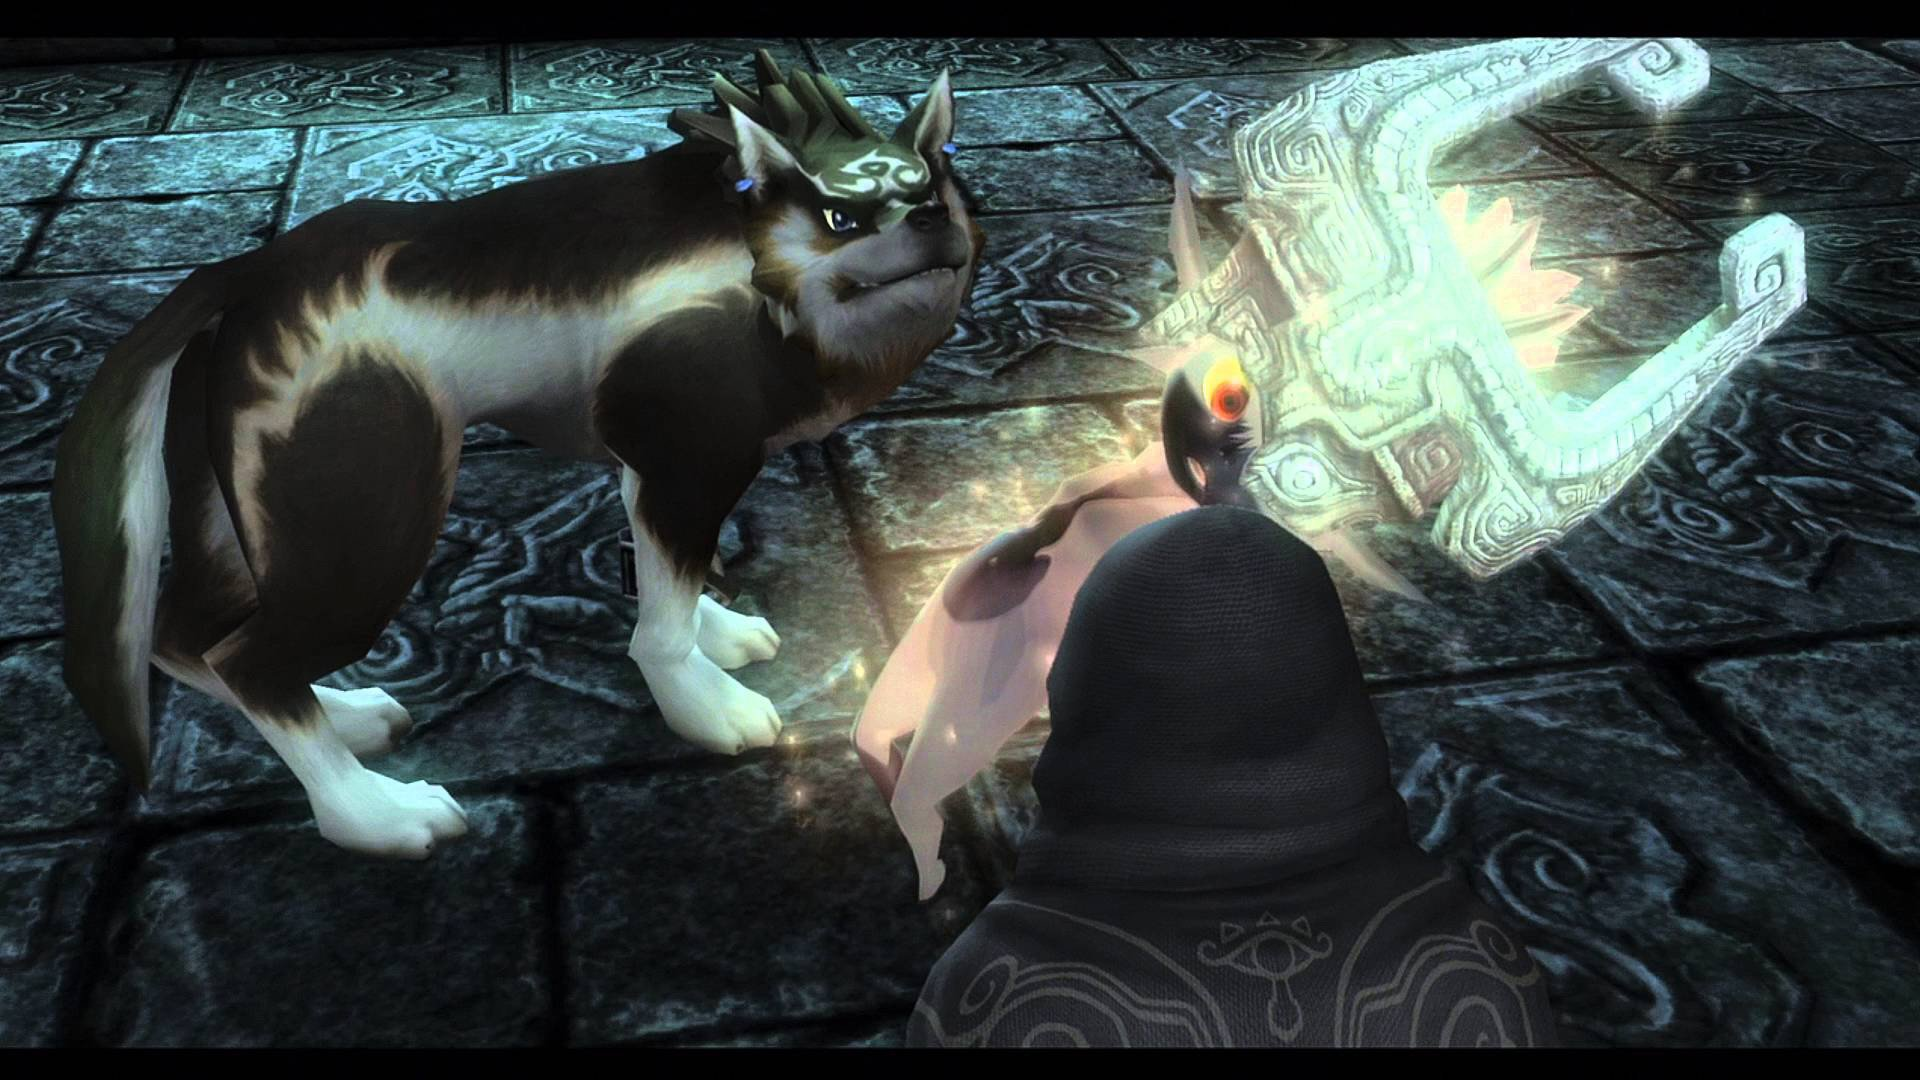 No piece of music has ever moved me as much as Midna's Lament in The Legend of Zelda: Twilight Princess screenshot